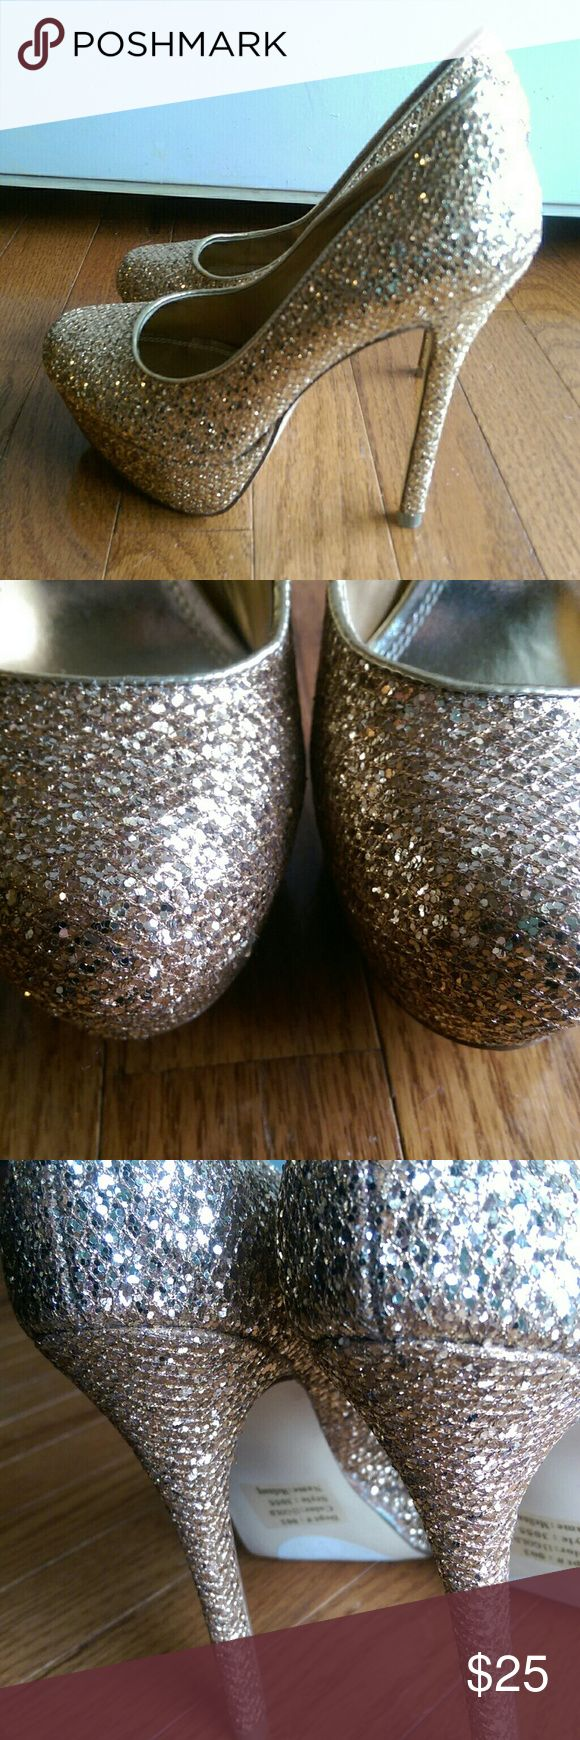 "Bakers Gold Sparkly High Heels Stilettos Size 6 Beautiful hardly worn heals. Just over 5"" in heel height from floor to shoe seem. Size 6M Bakers Shoes Heels"